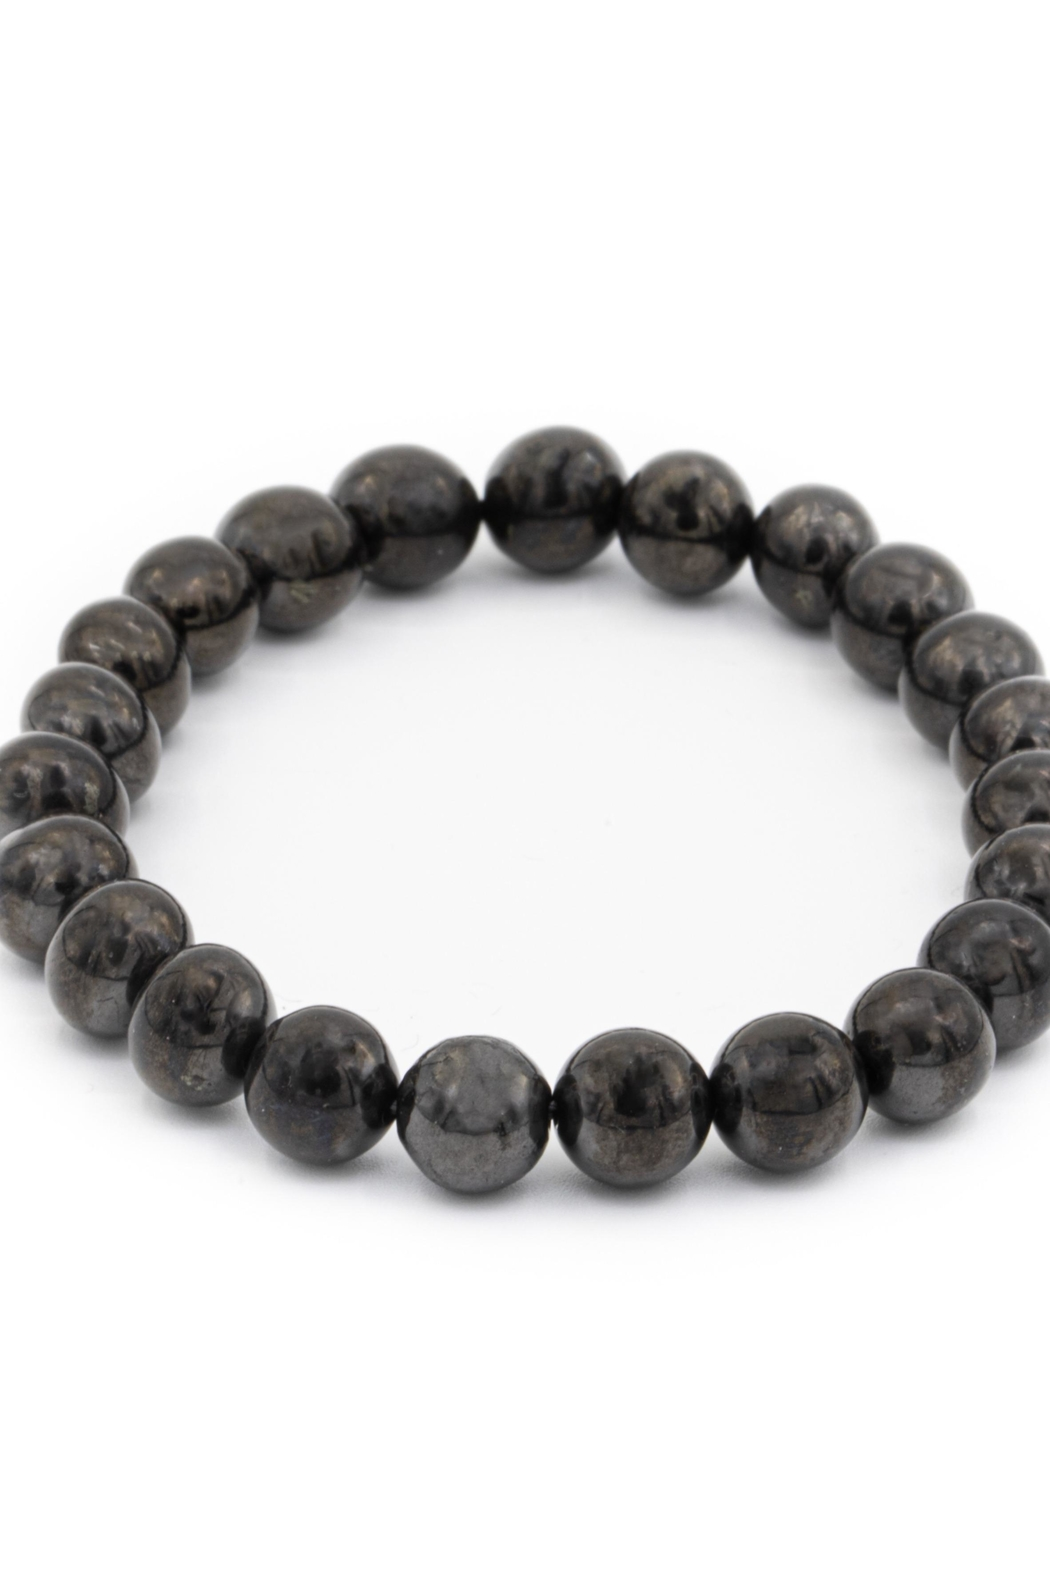 Made It! Shungite Stone Bracelet - Main Image